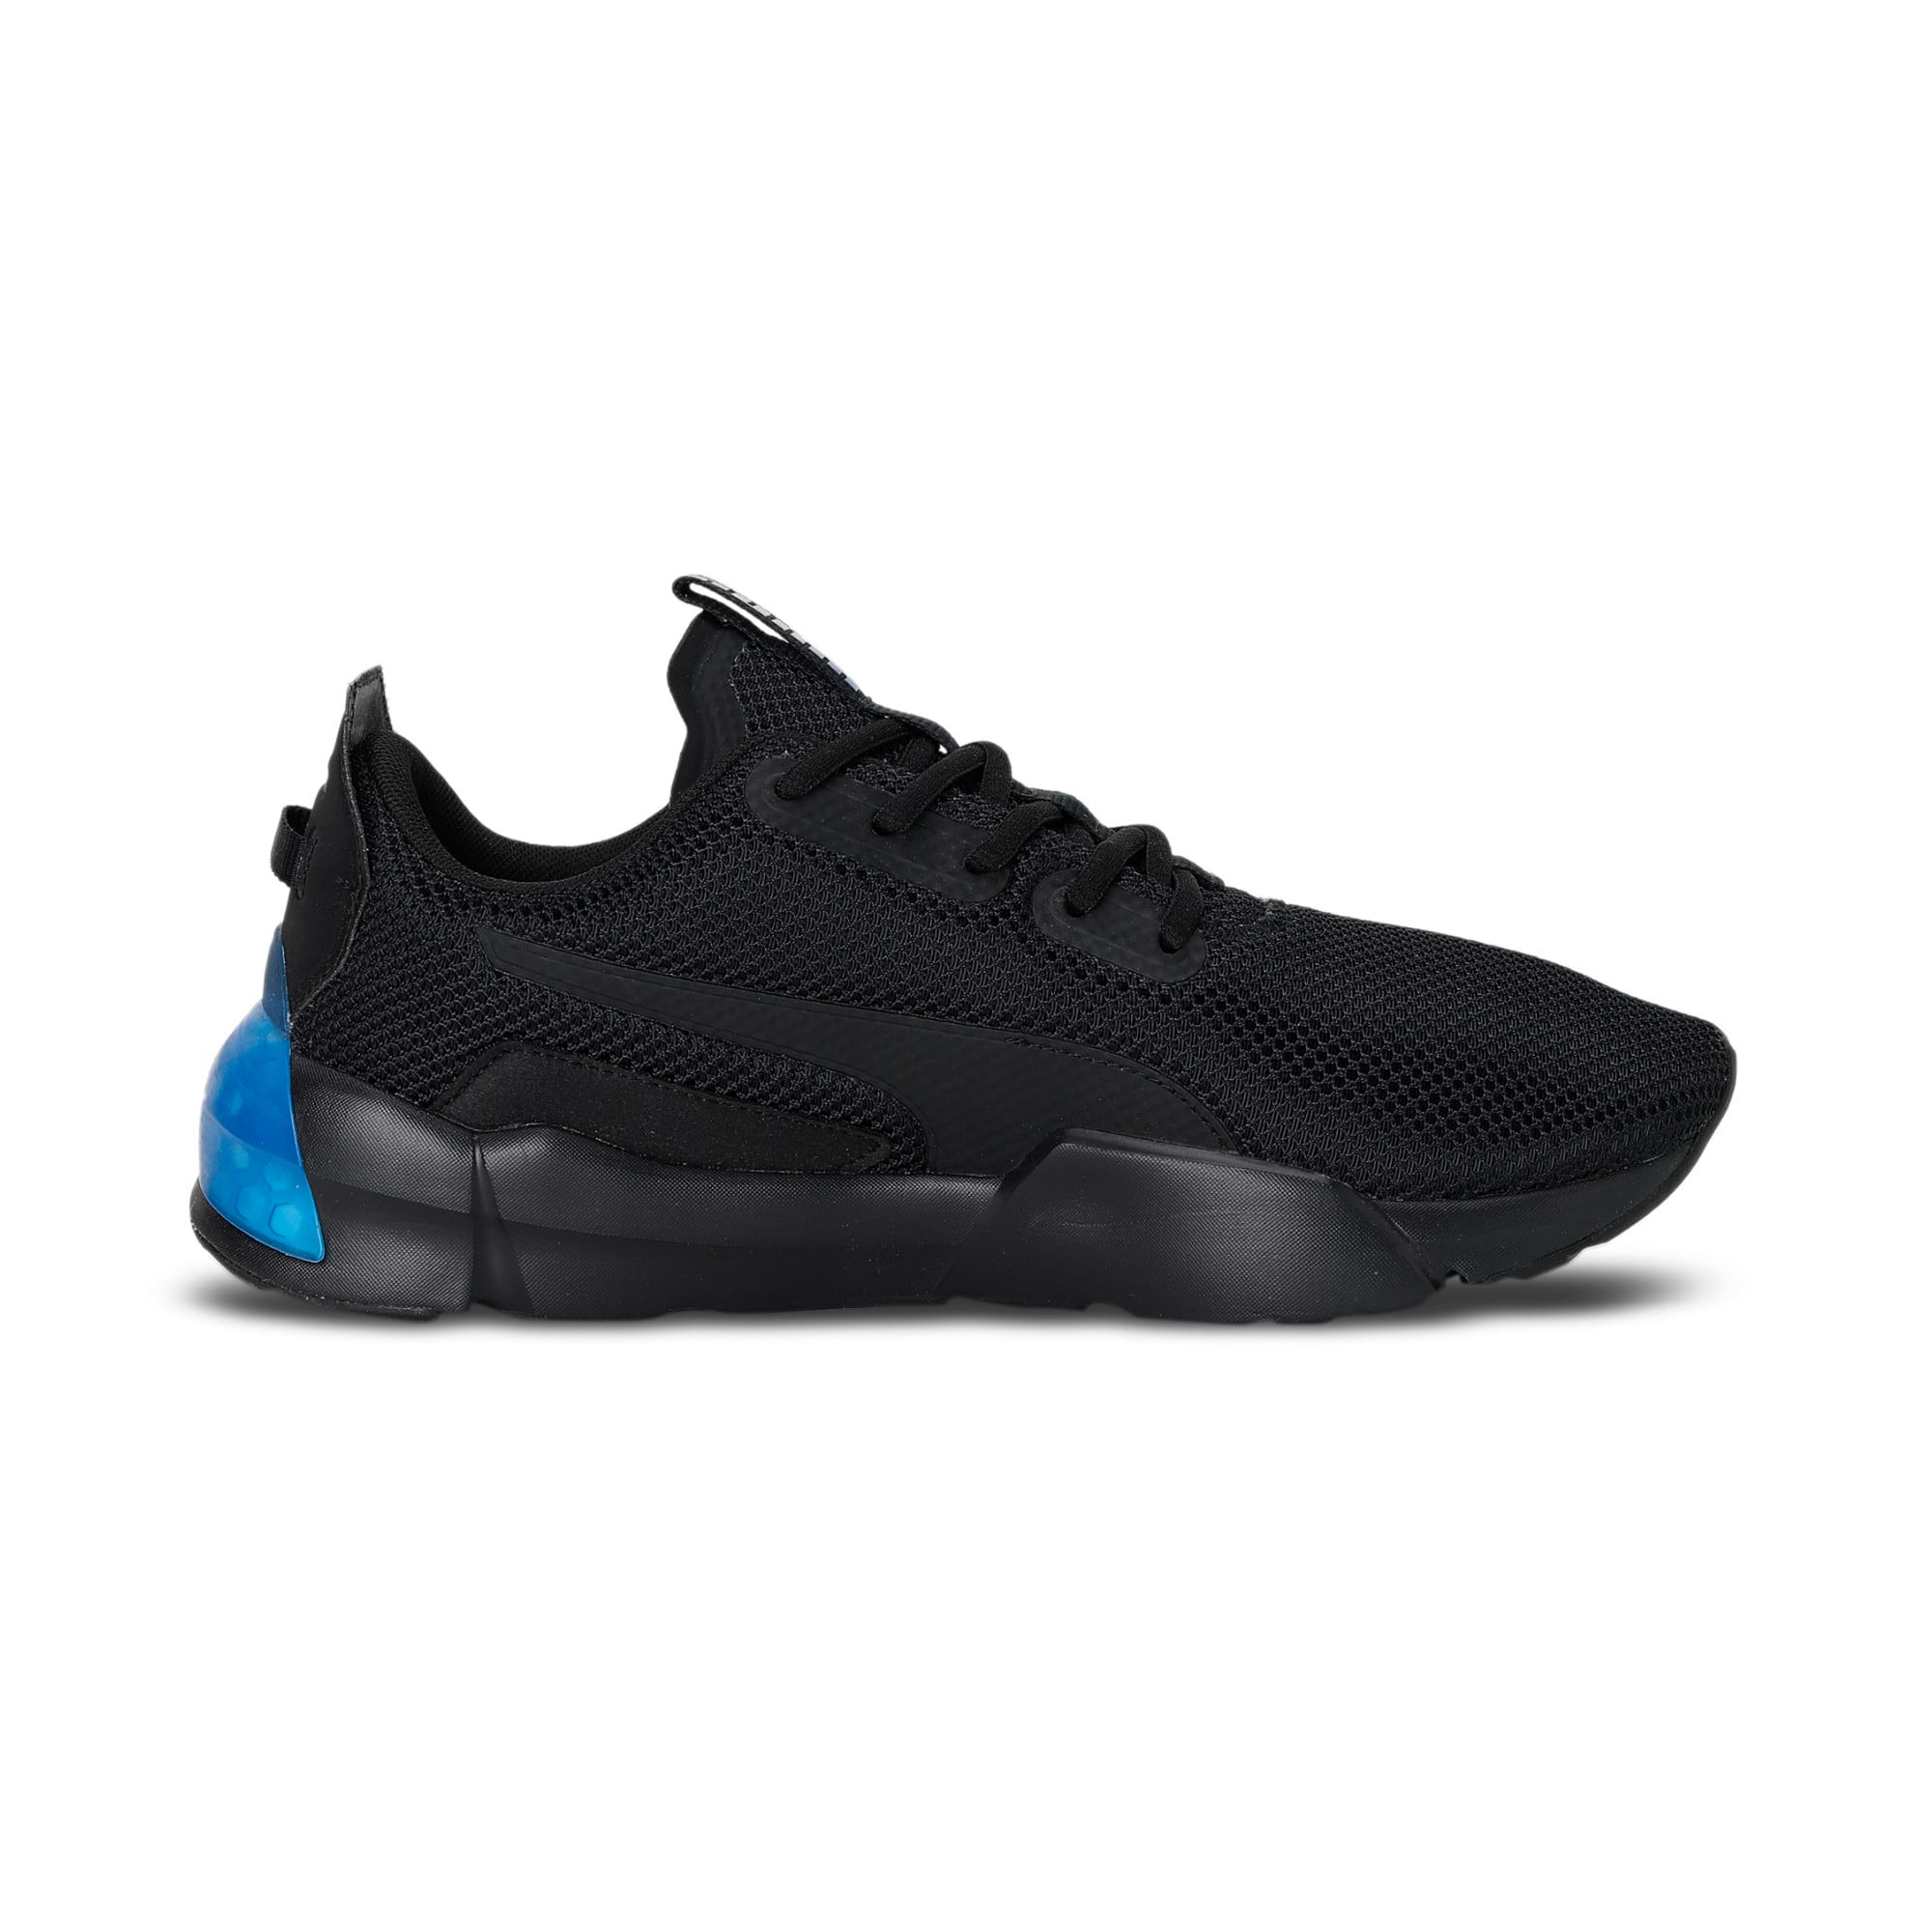 Thumbnail 7 of CELL Phase Men's Running Trainers, Puma Black-Galaxy Blue, medium-IND